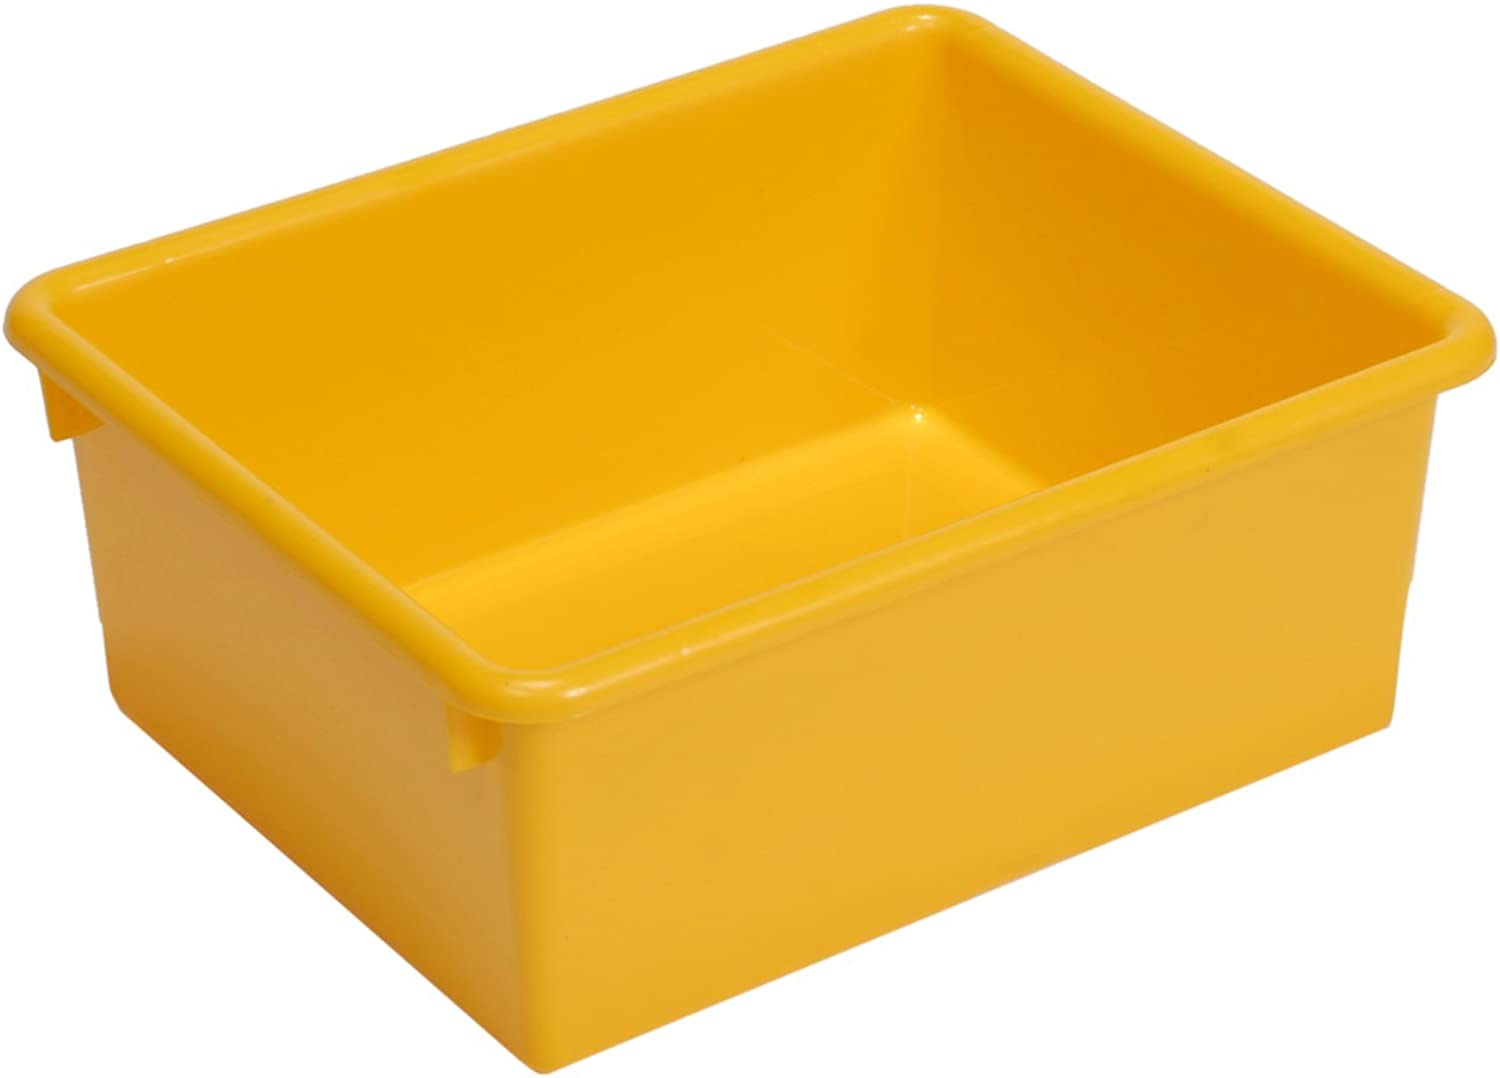 Steffy Wood Products Yellow Storage Tub, 5-Inch by 10-1 2-Inch by 13-Inch